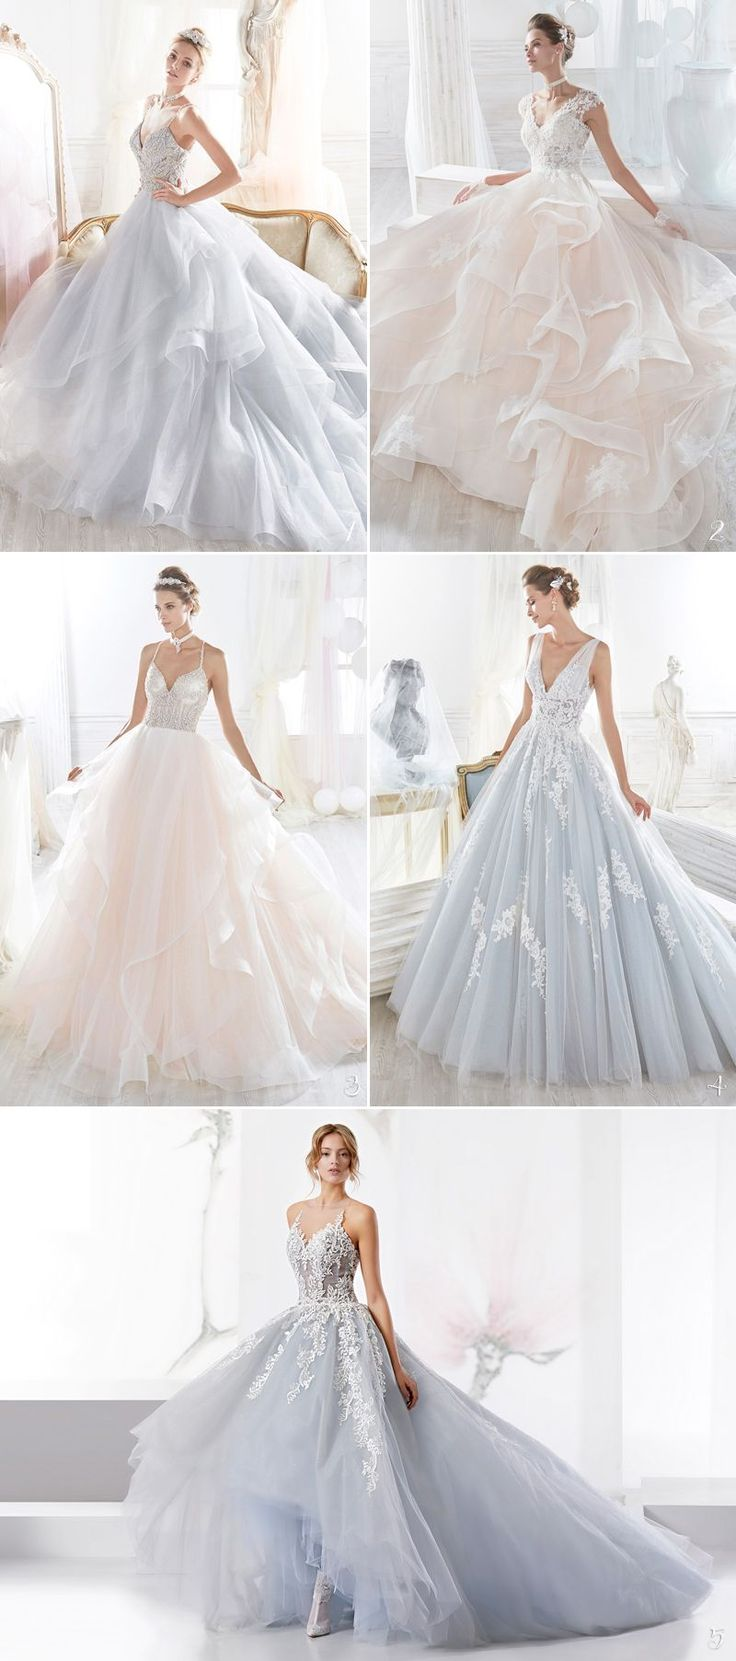 2018 Revealed! 25 Romantic Ball Gowns That Stole Our Hearts!